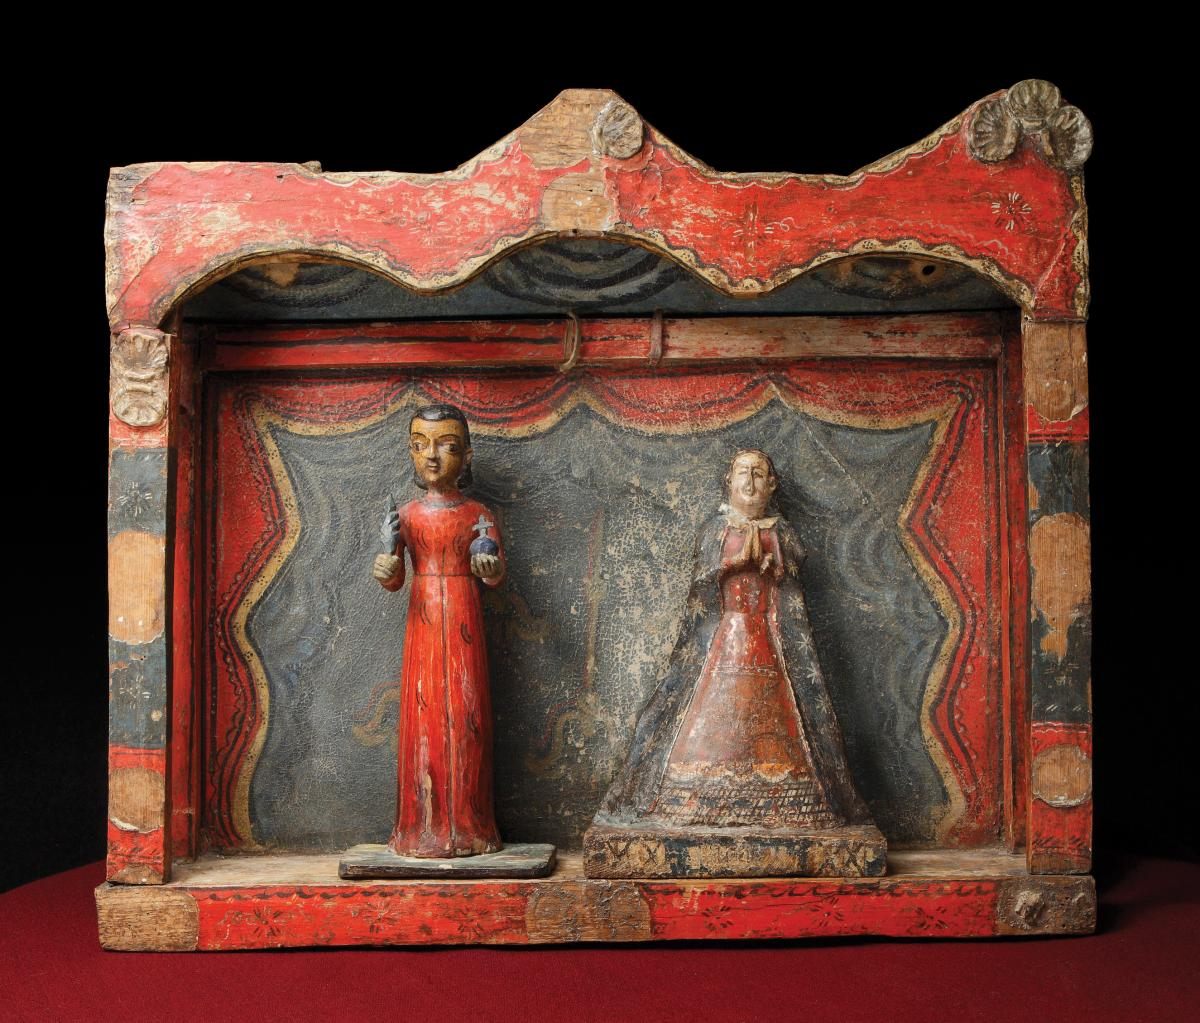 two wooden figures of saints, framed in a red wood